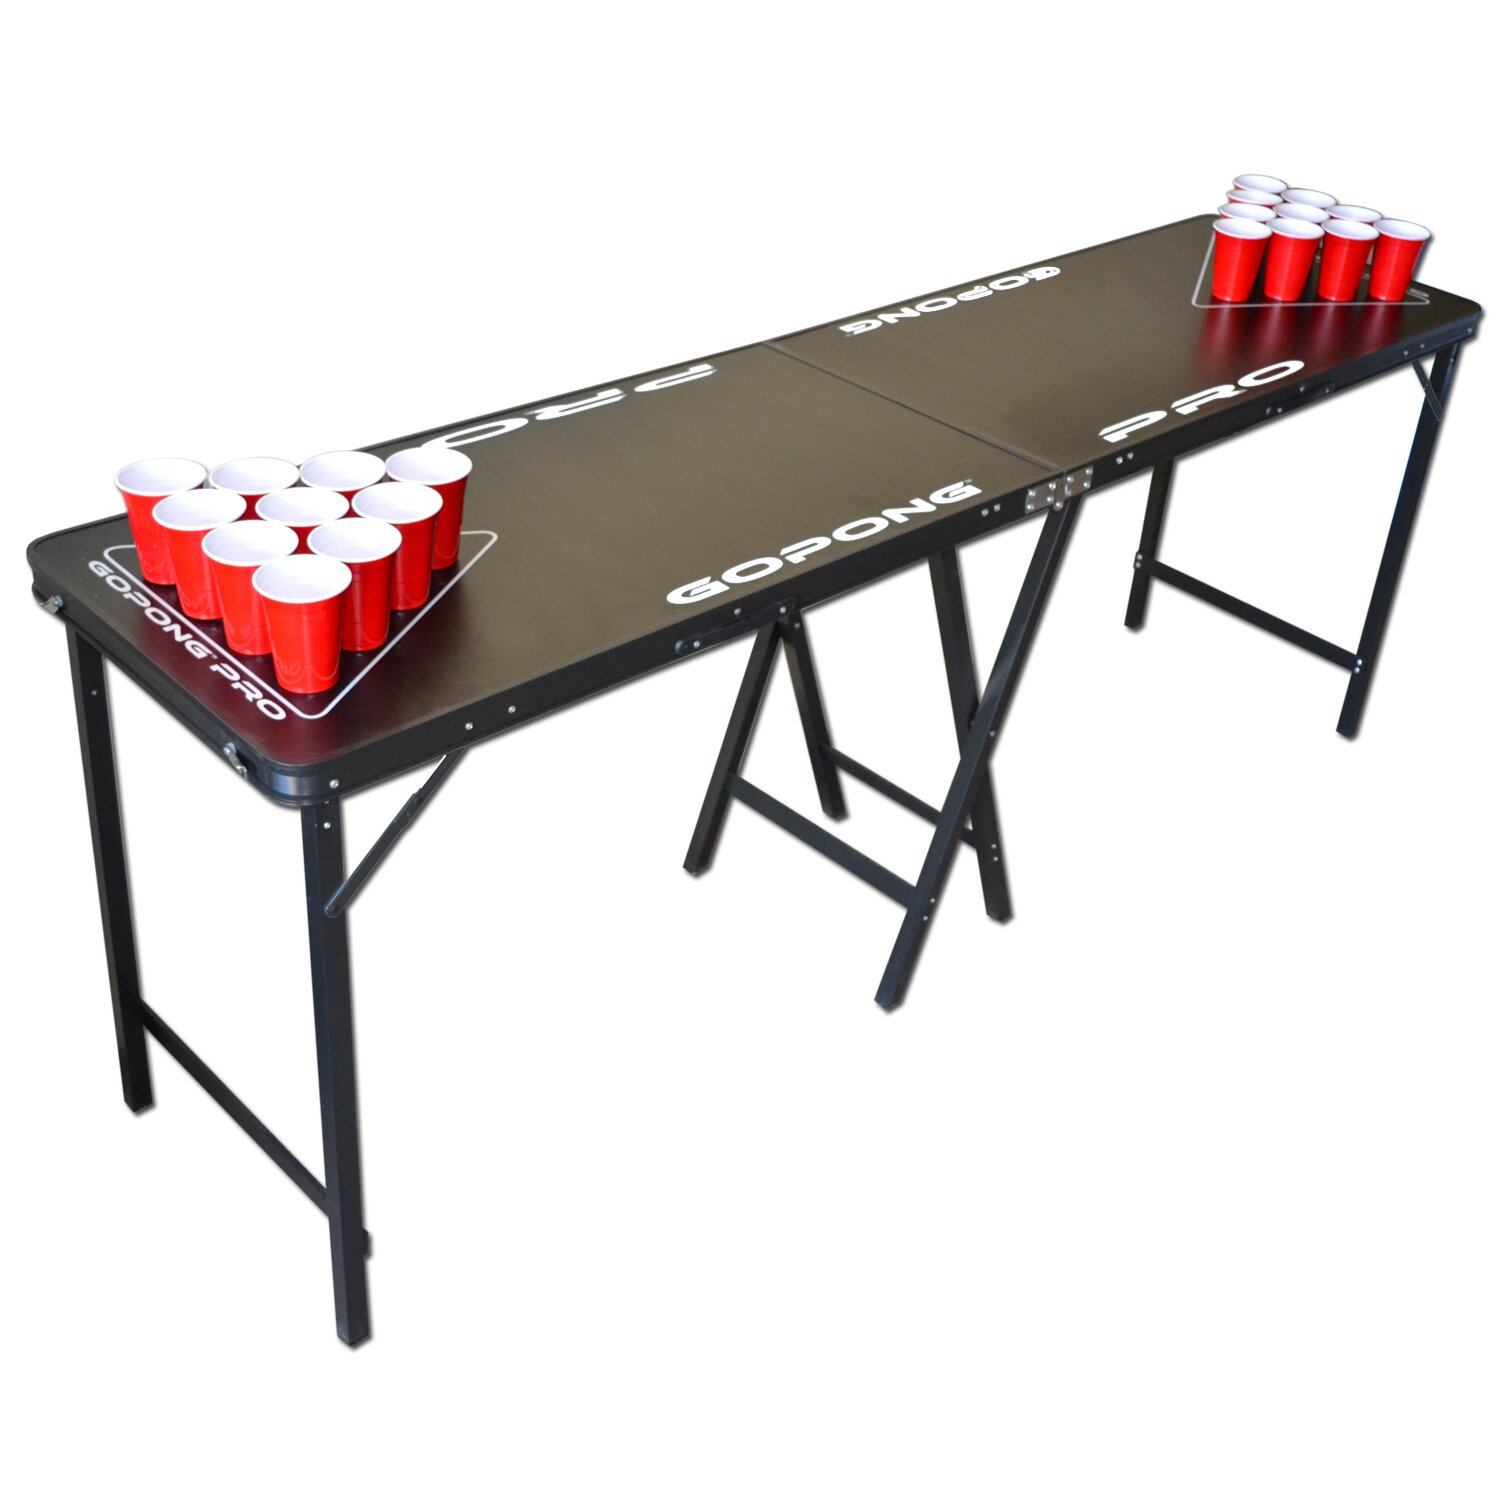 Gopong pro 8 39 premium beer pong table for bars reviews wayfair - Professional beer pong table ...